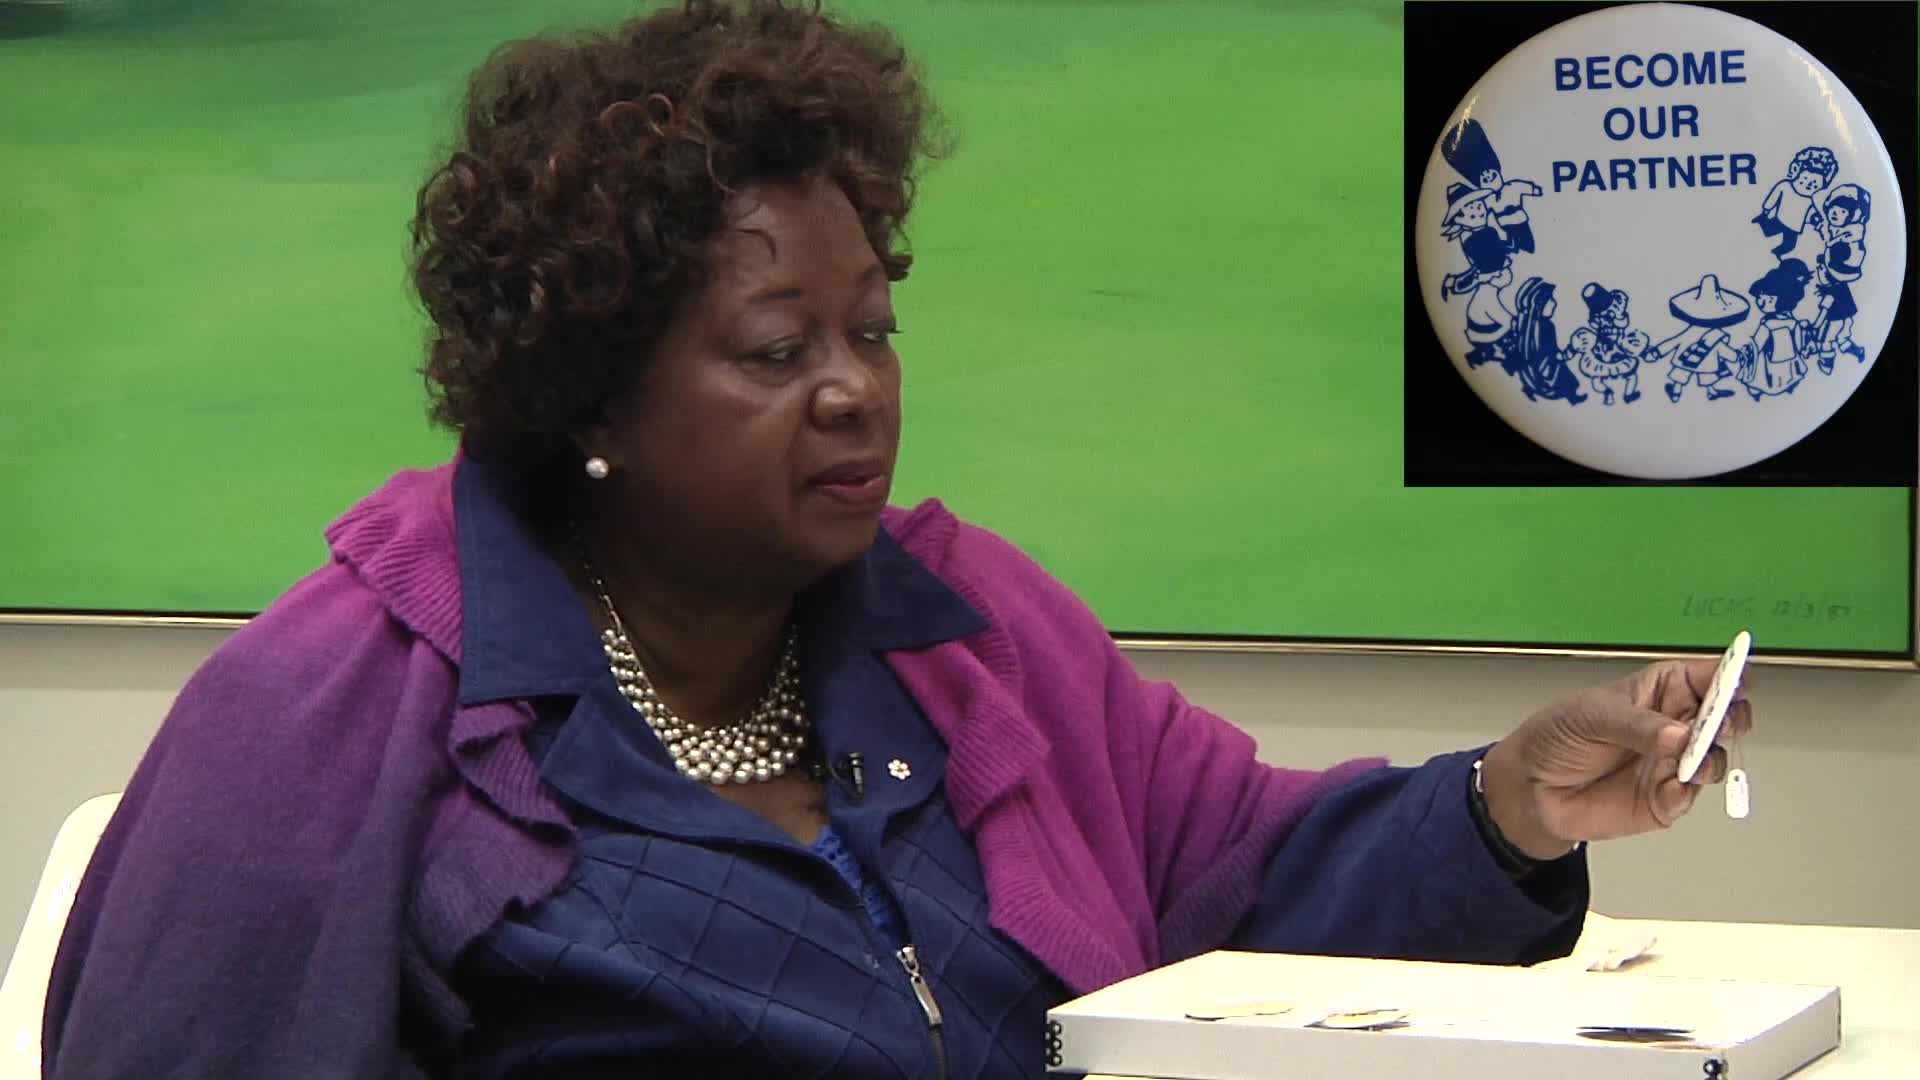 Jean Augustine interview: Become our partner button